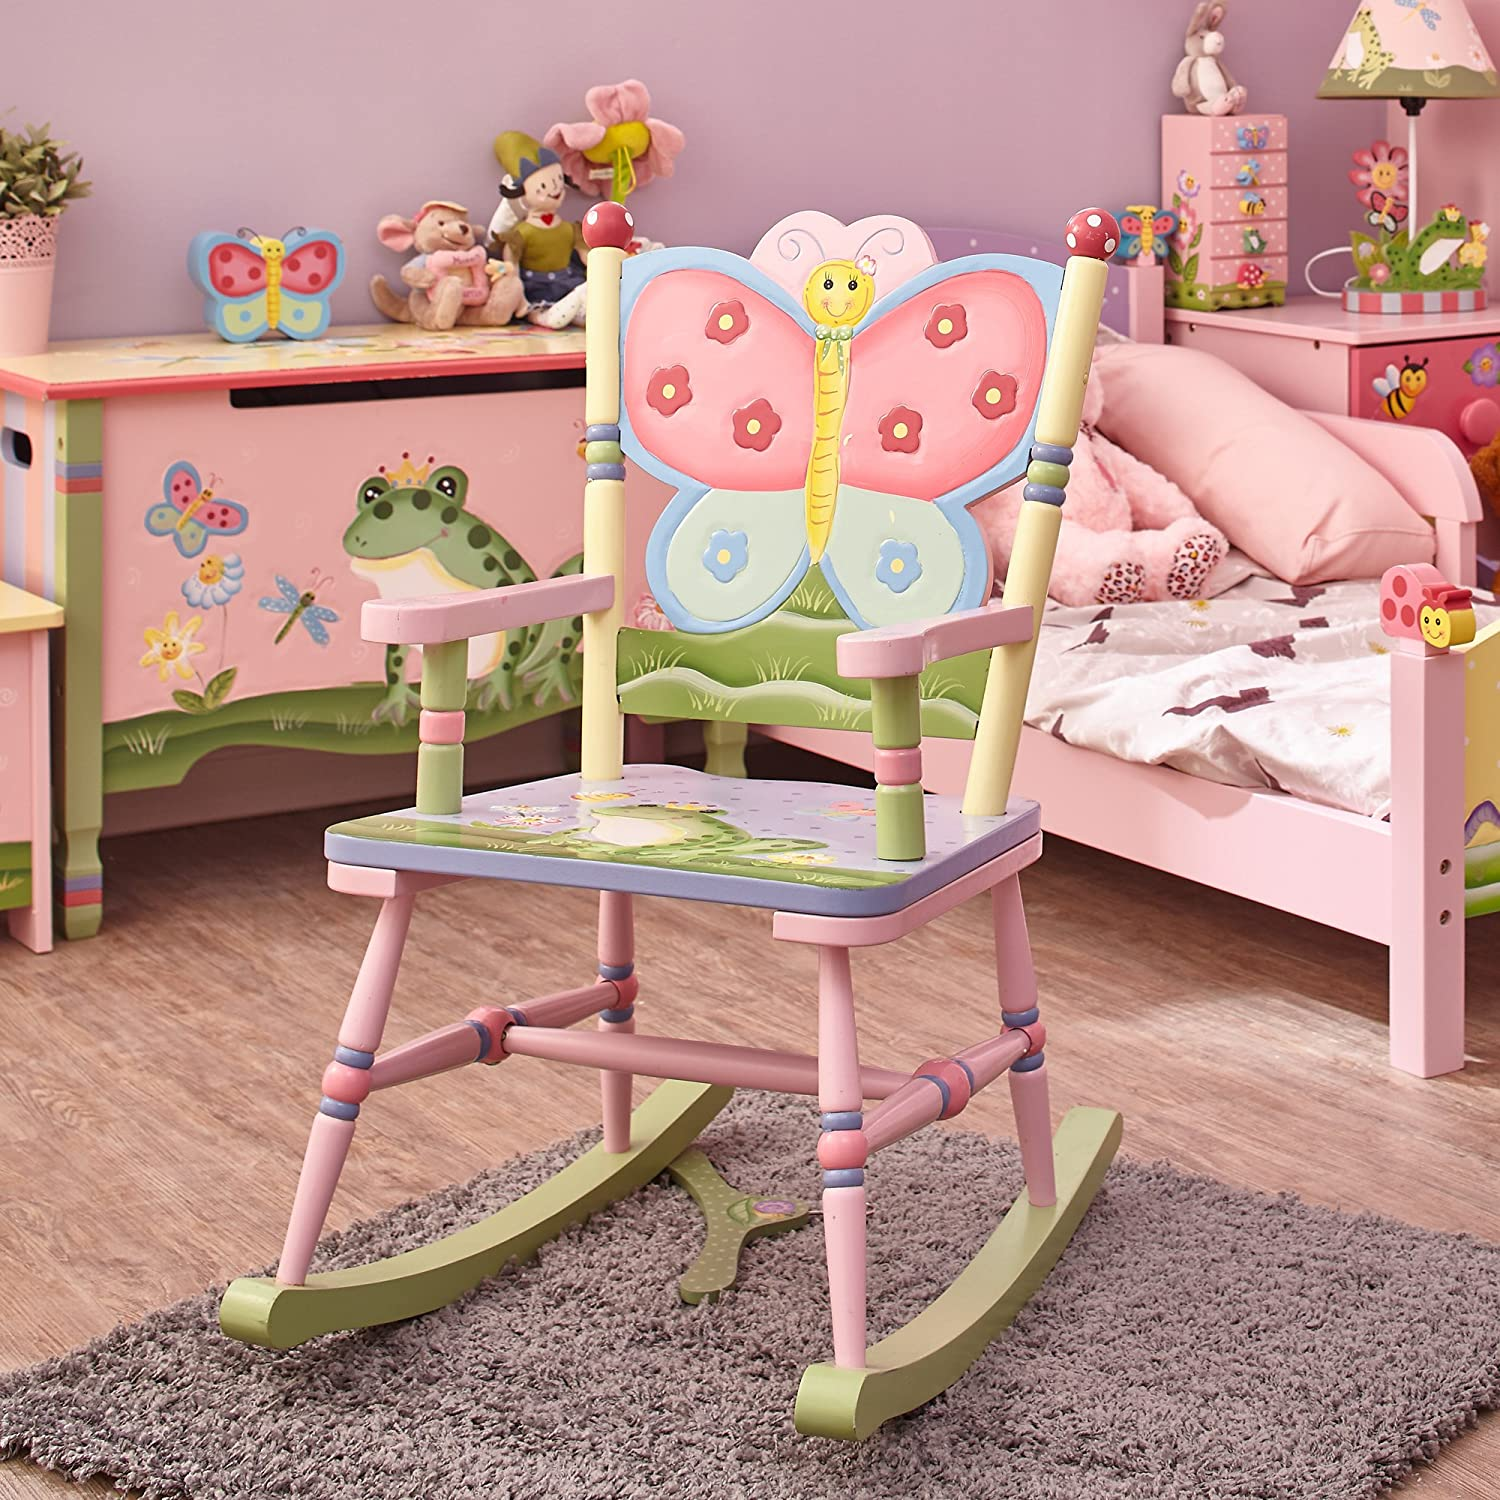 Hand Crafted /& Hand Painted Details Crackled Rose themed Kids Wooden Rocking Chair Fantasy Fields Child Friendly Water-based Paint